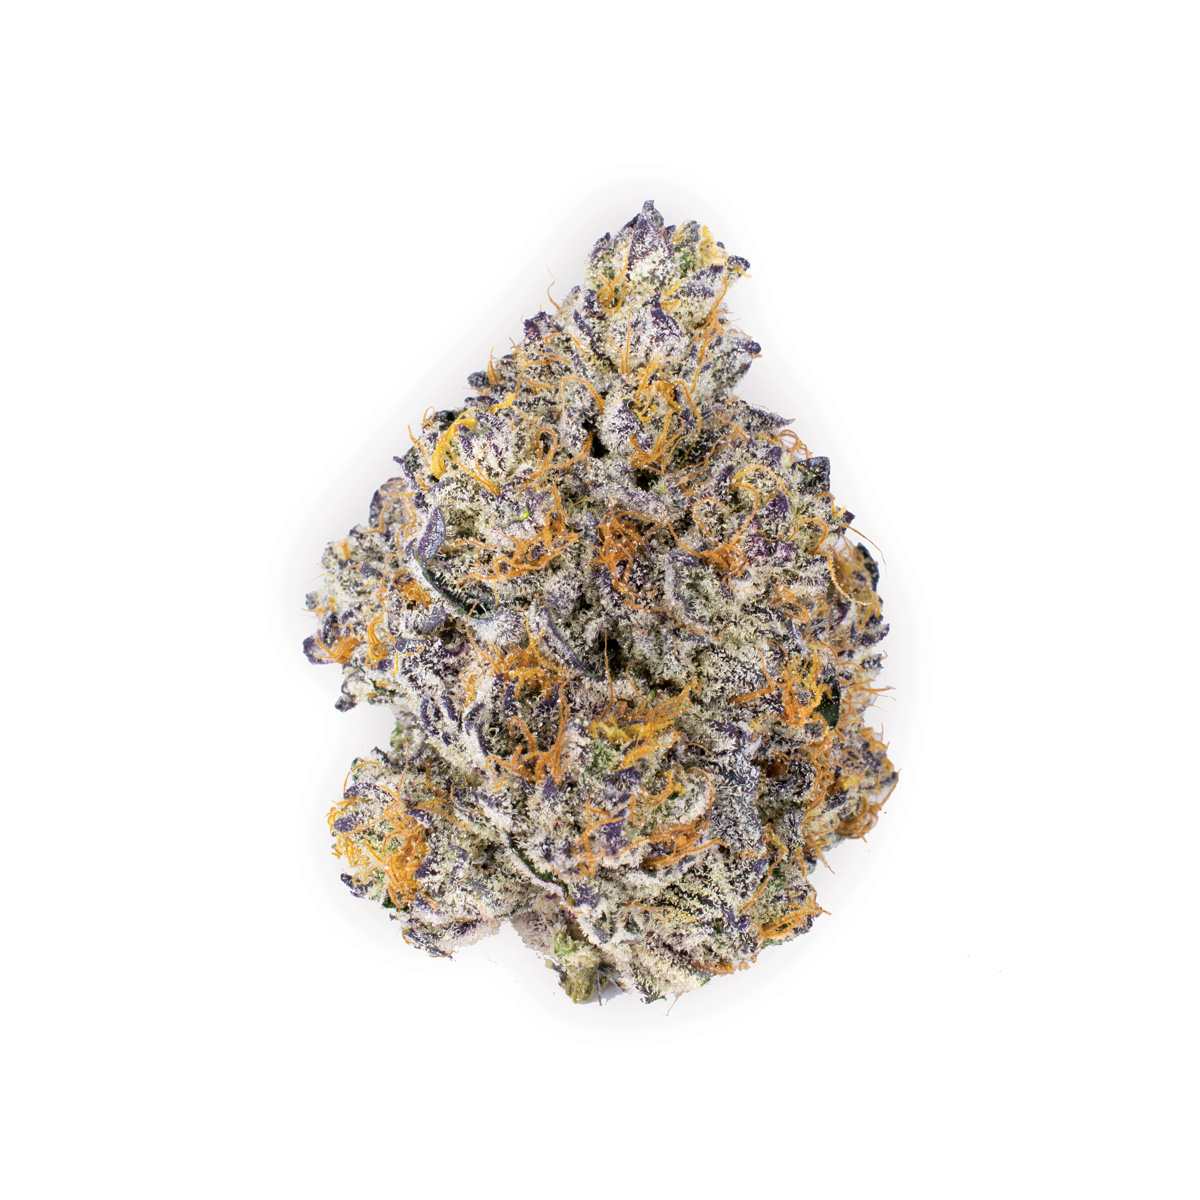 Ice cream cake - Indica Dominant Hybrid0% THC | 0% CBDBred by Seed Junky Genetics, Ice Cream Cake is an indica-dominant cross of Wedding Cake and Gelato #33. Completely flushed with icy trichomes, the buds express light green coloration with dark purple hues throughout. Ice Cream Cake maintains a creamy flavor profile with sweet hints of vanilla, sugary dough and berries. Its heavy effect is sure to leave you completely relaxed with a good night's sleep to follow.